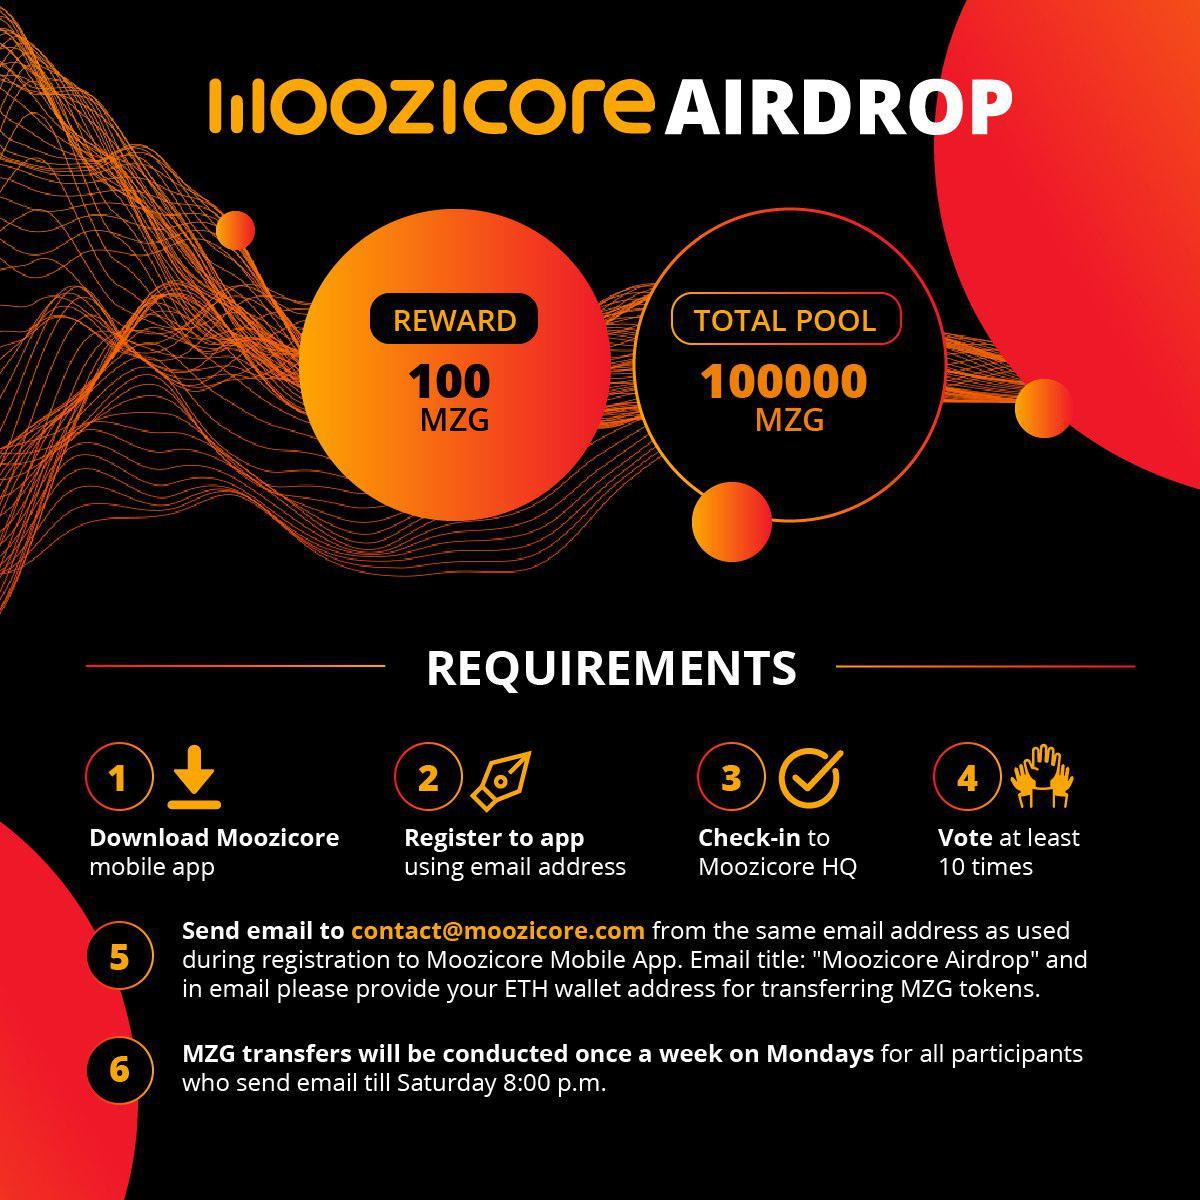 Moozicore Airdrop » Claim 100 free MZG tokens (~ $3.8)